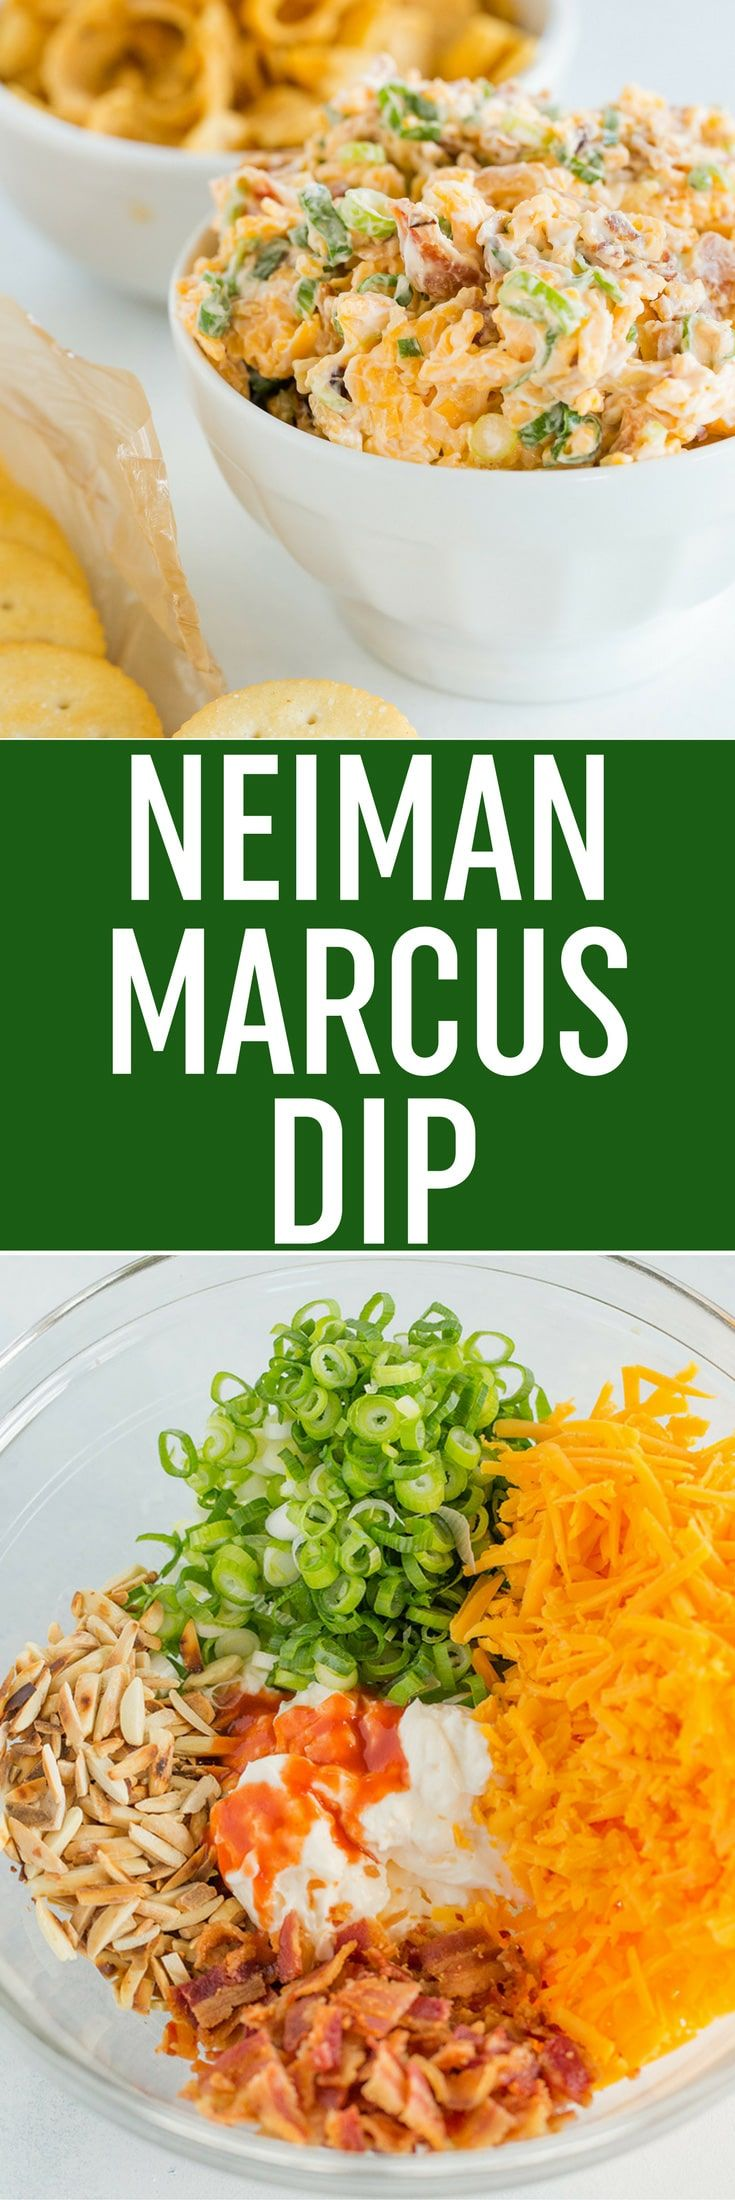 Neiman Marcus Dip is inspired by a dip served at their restaurants; a super easy combination of bacon, cheese, scallions, almonds, mayo and hot sauce... Ready in just 15 minutes! via @browneyedbaker